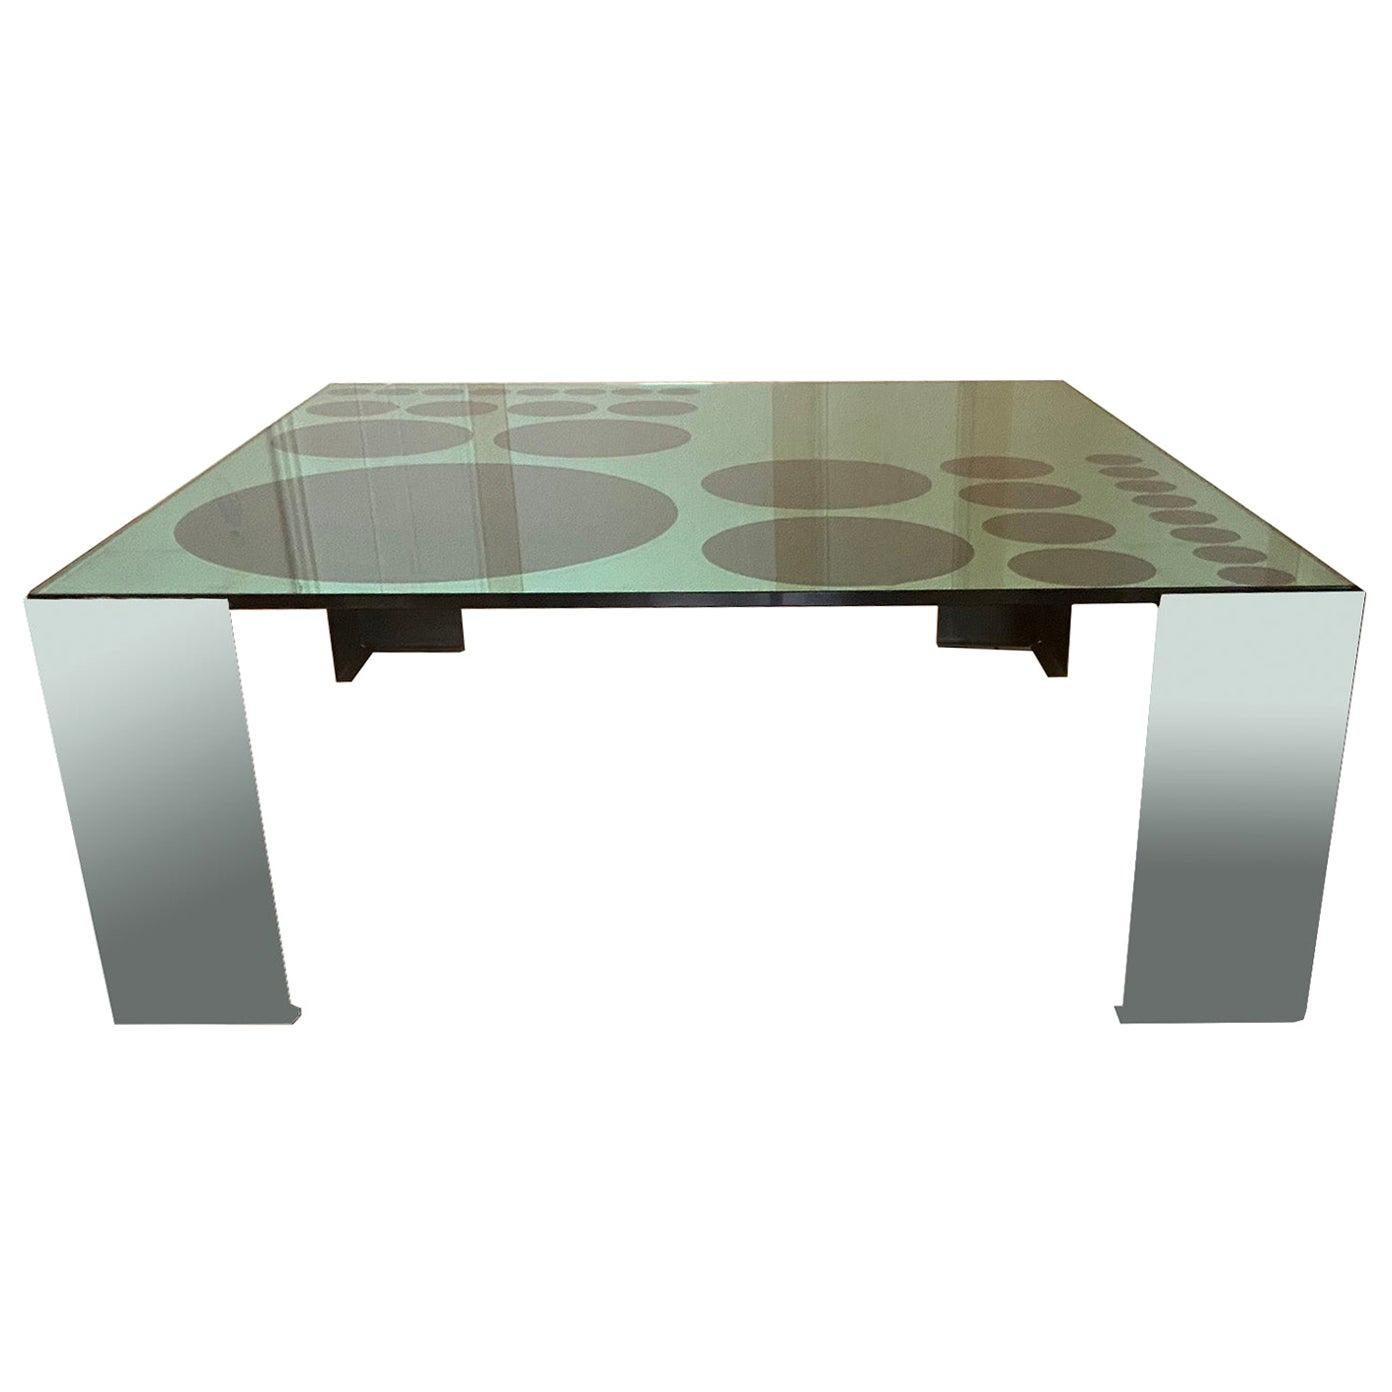 1970s Optical Coffe Table